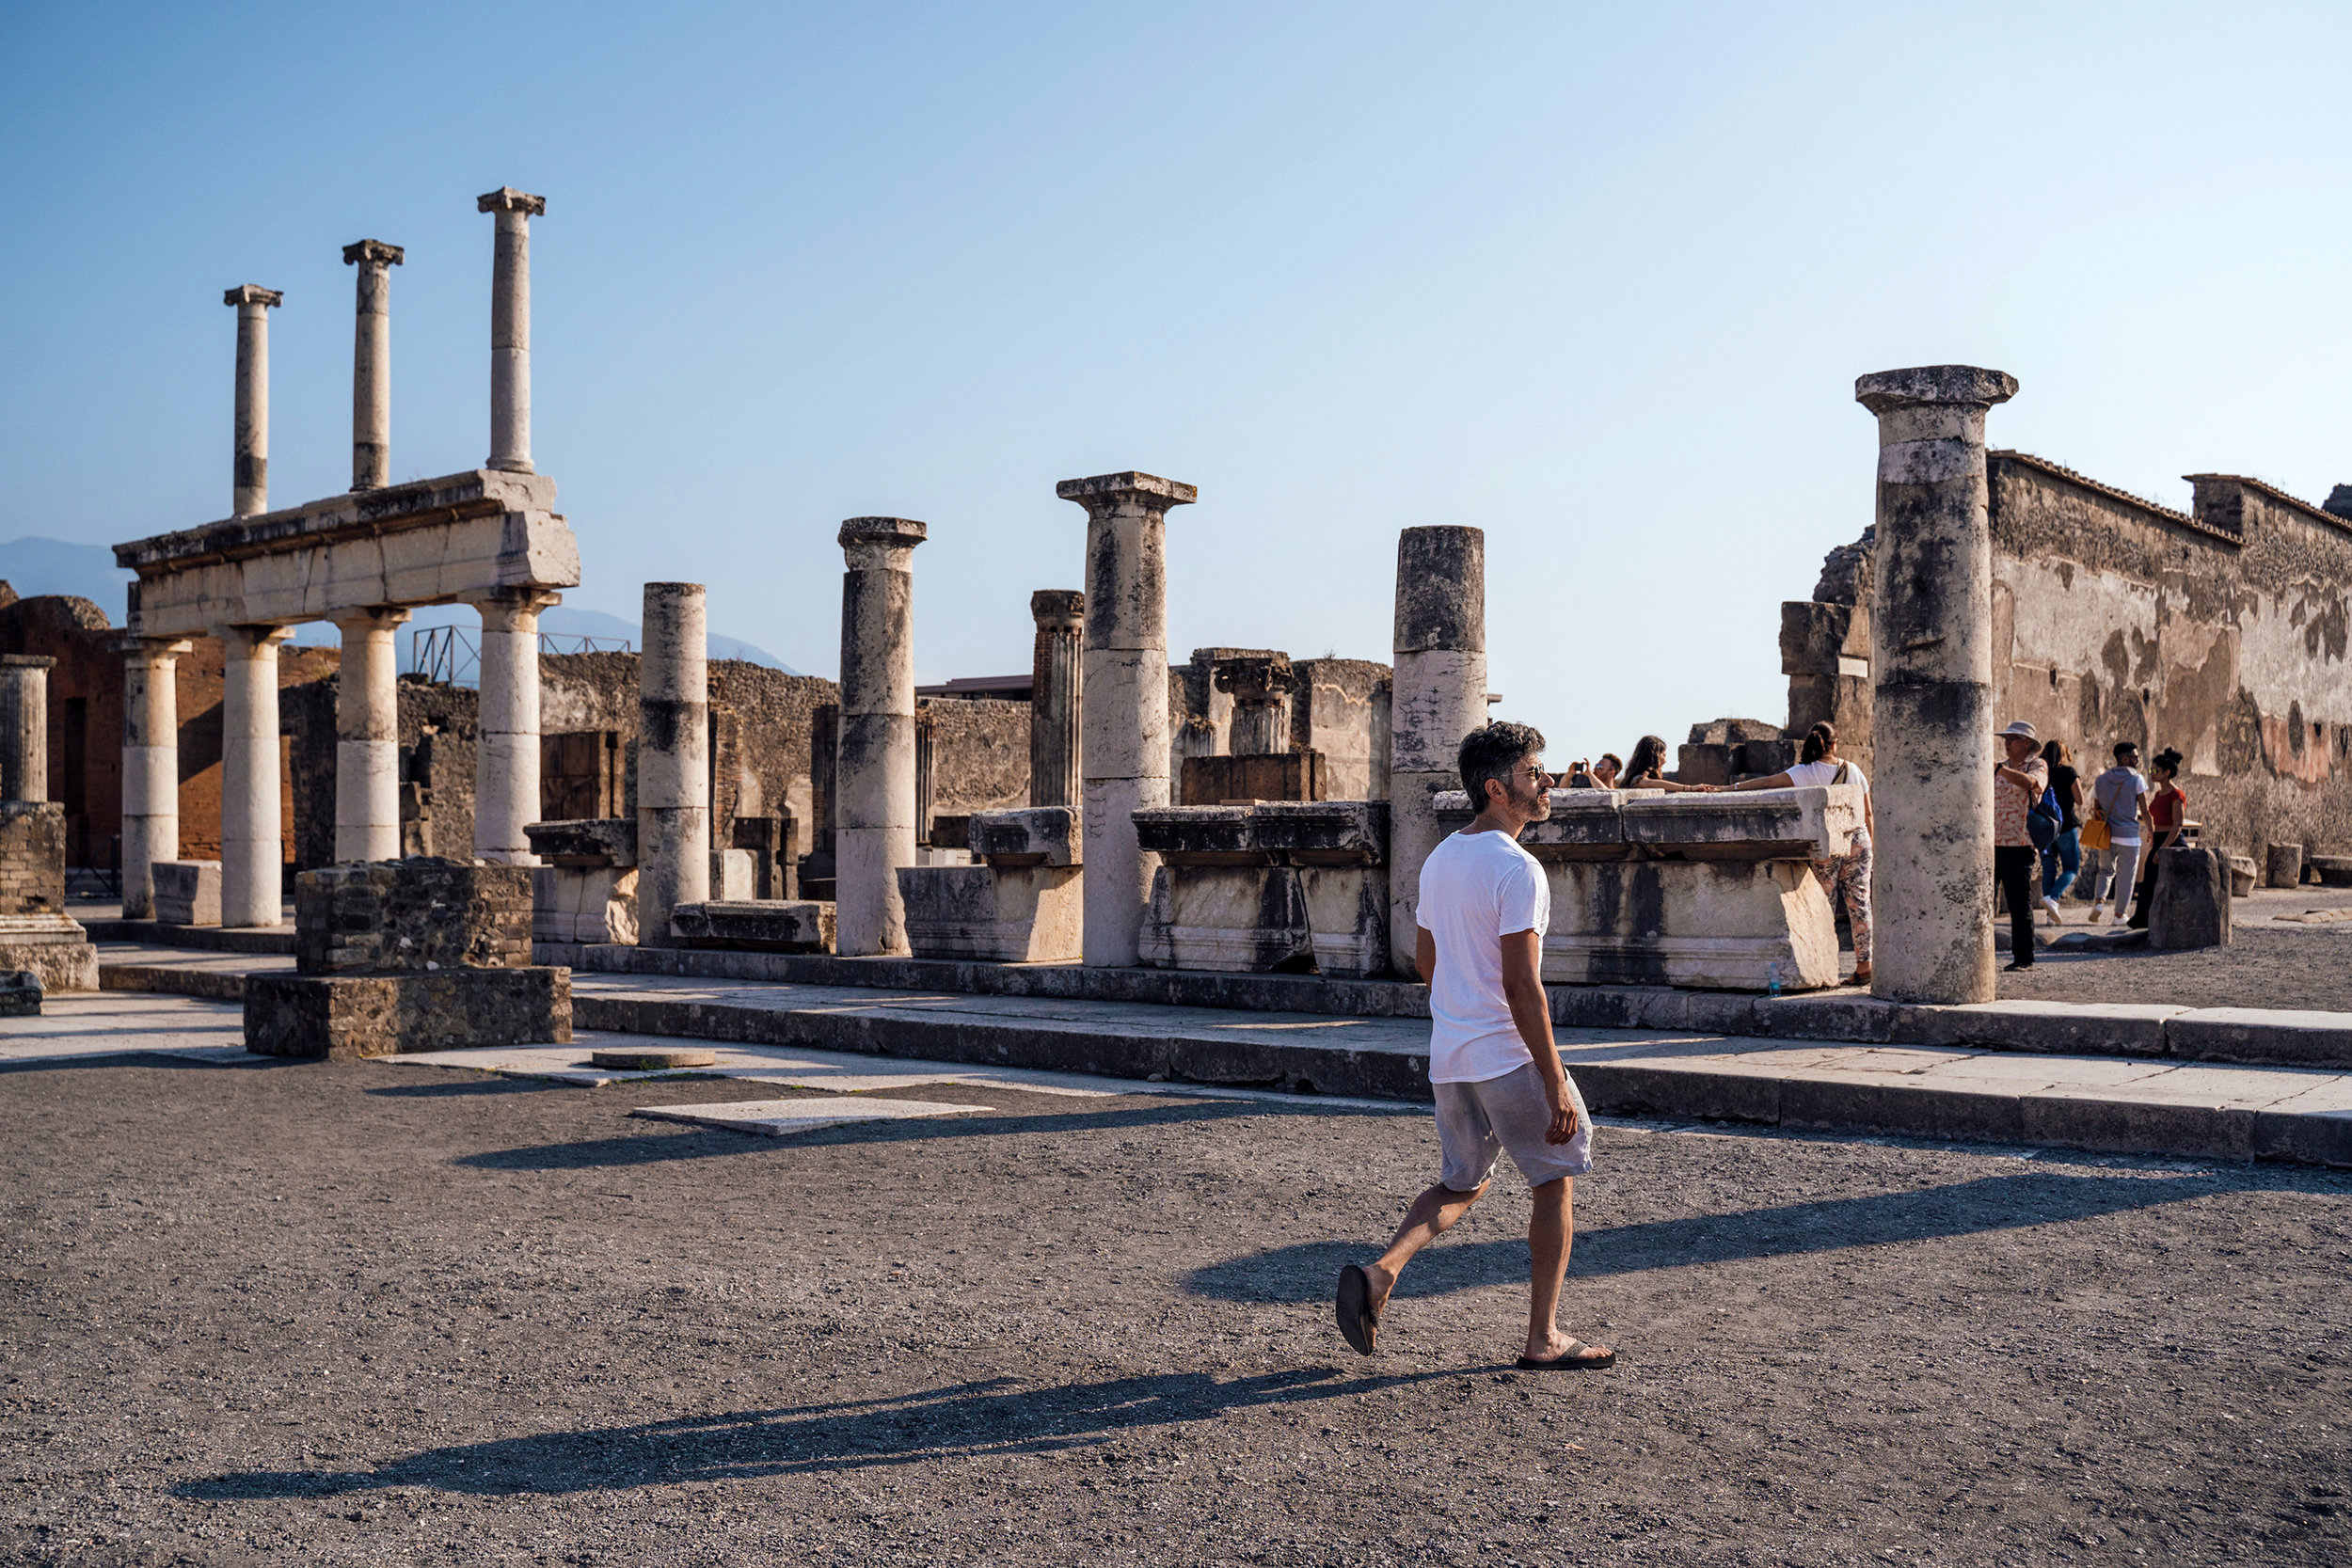 We fast-walked through all of Pompeii